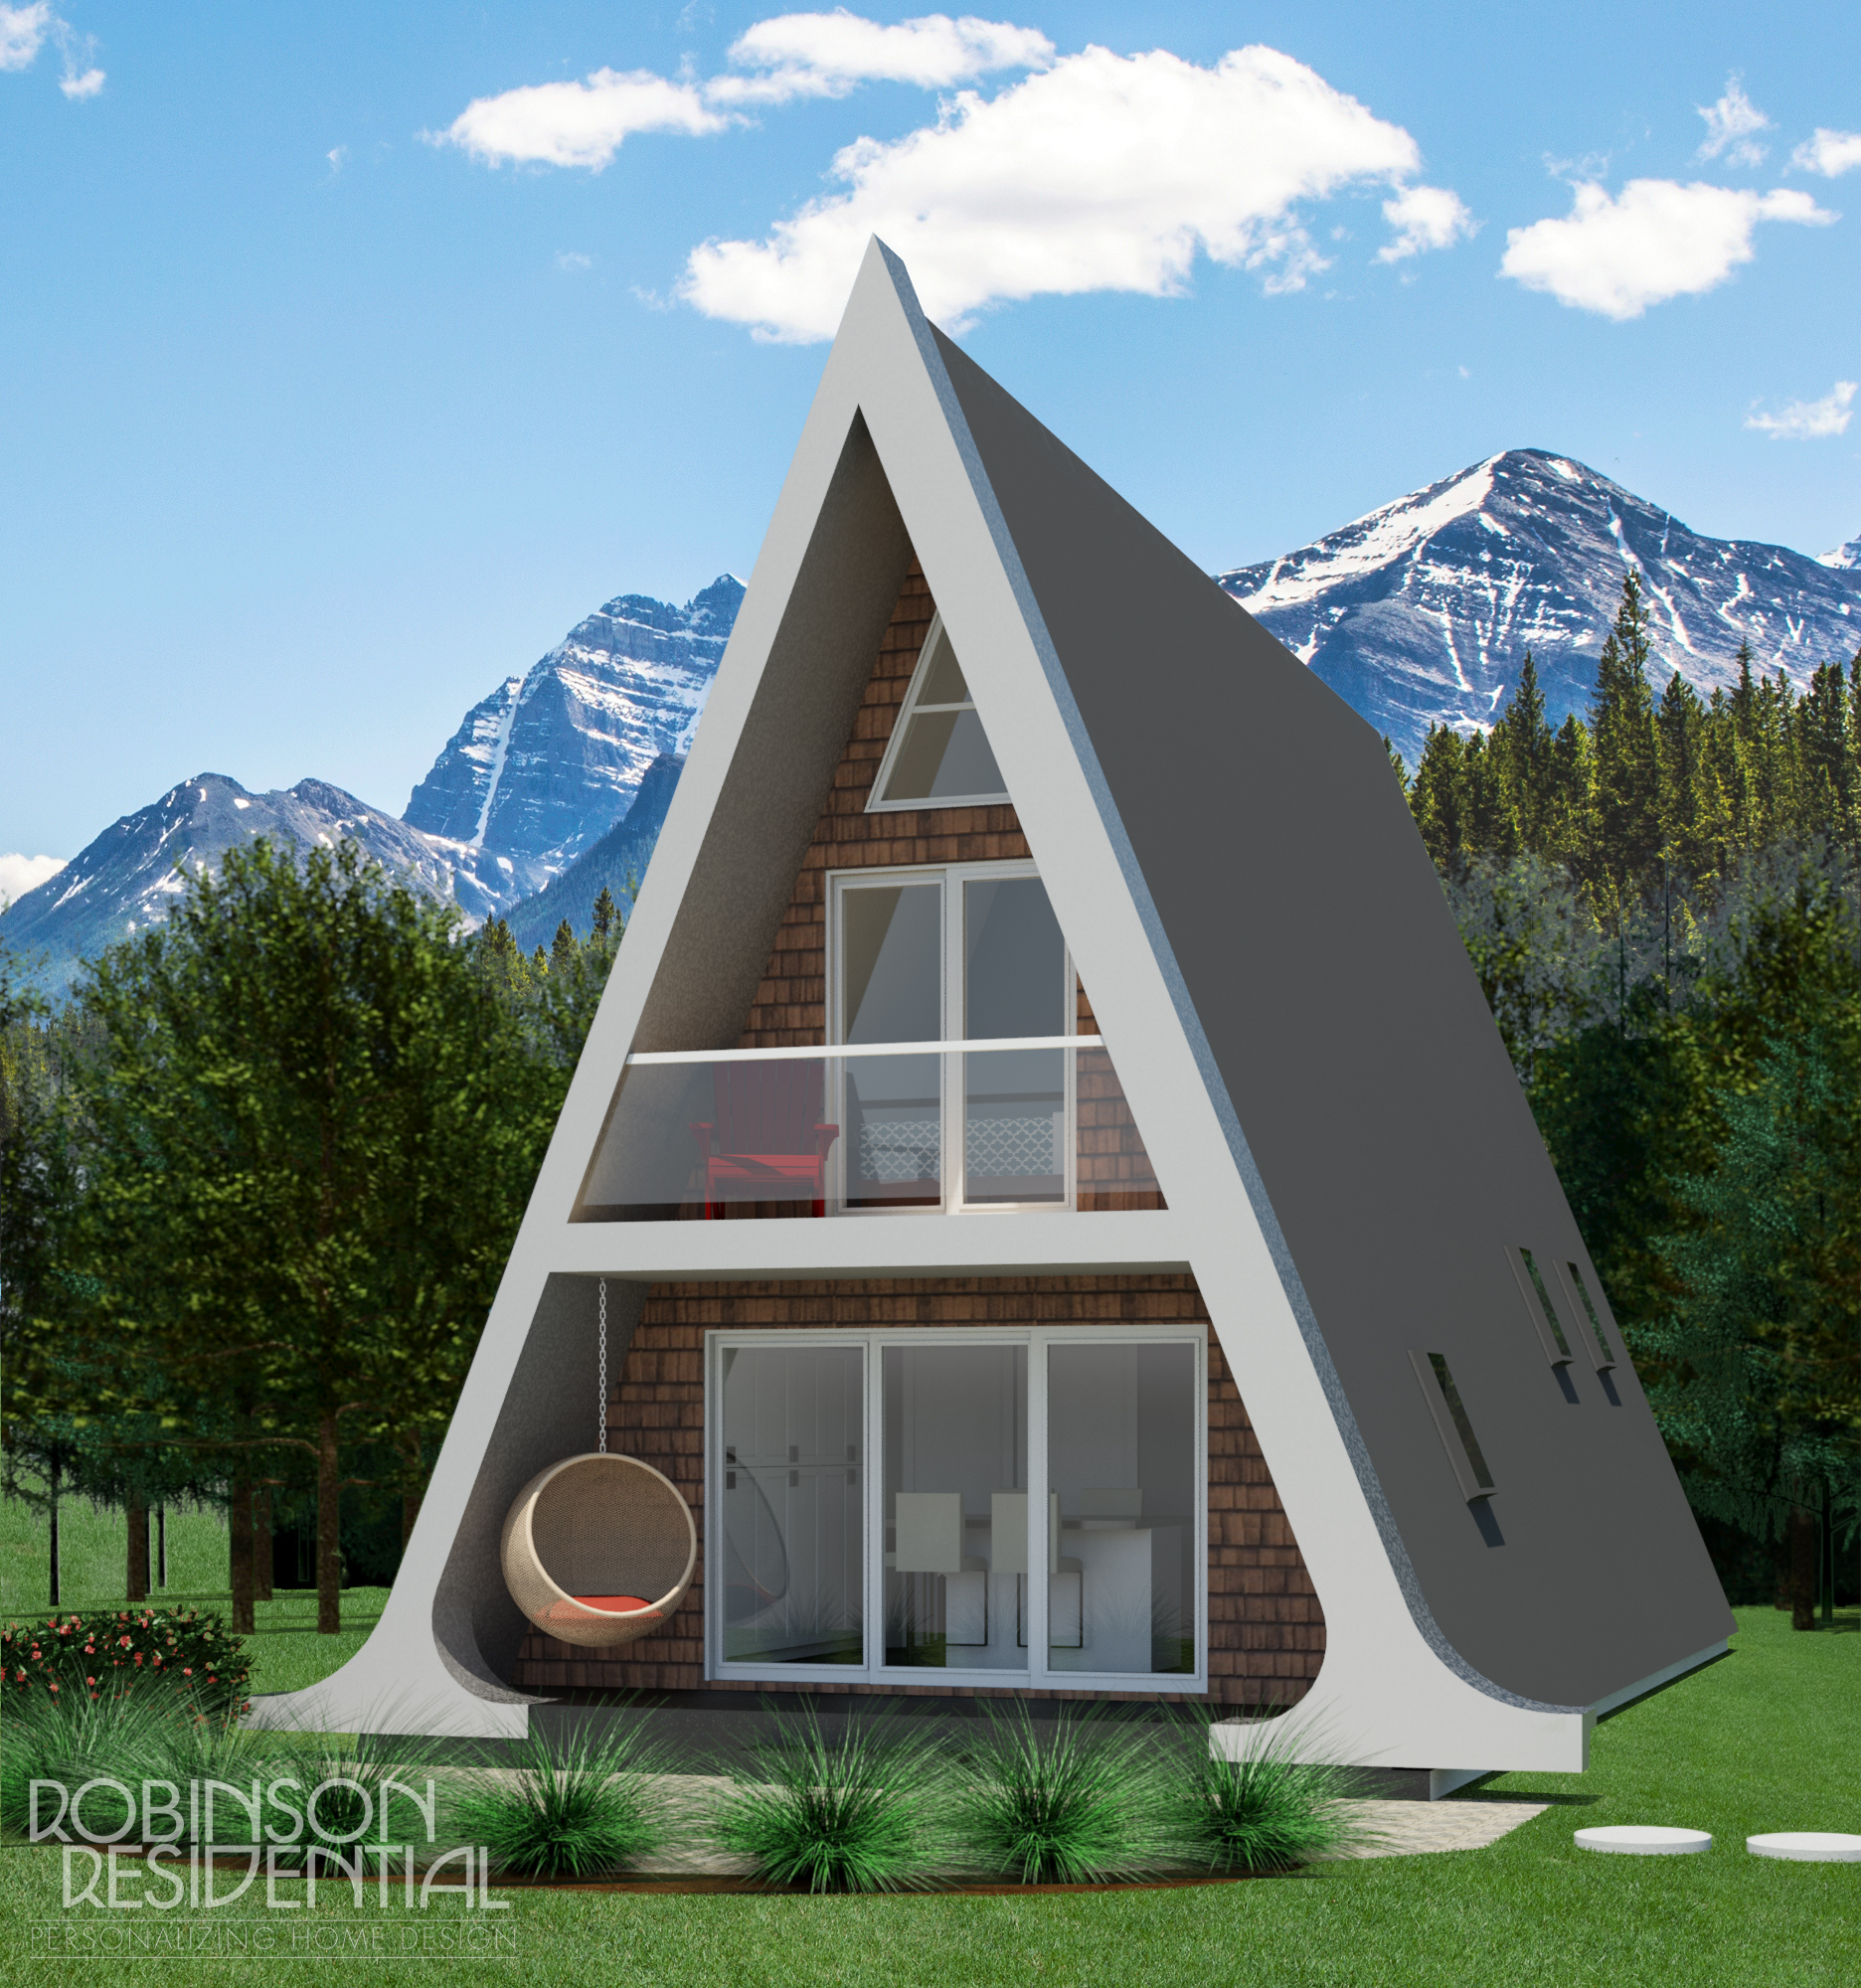 Home Design Ideas For Small Houses: Alberta A-Frame Small Home Design